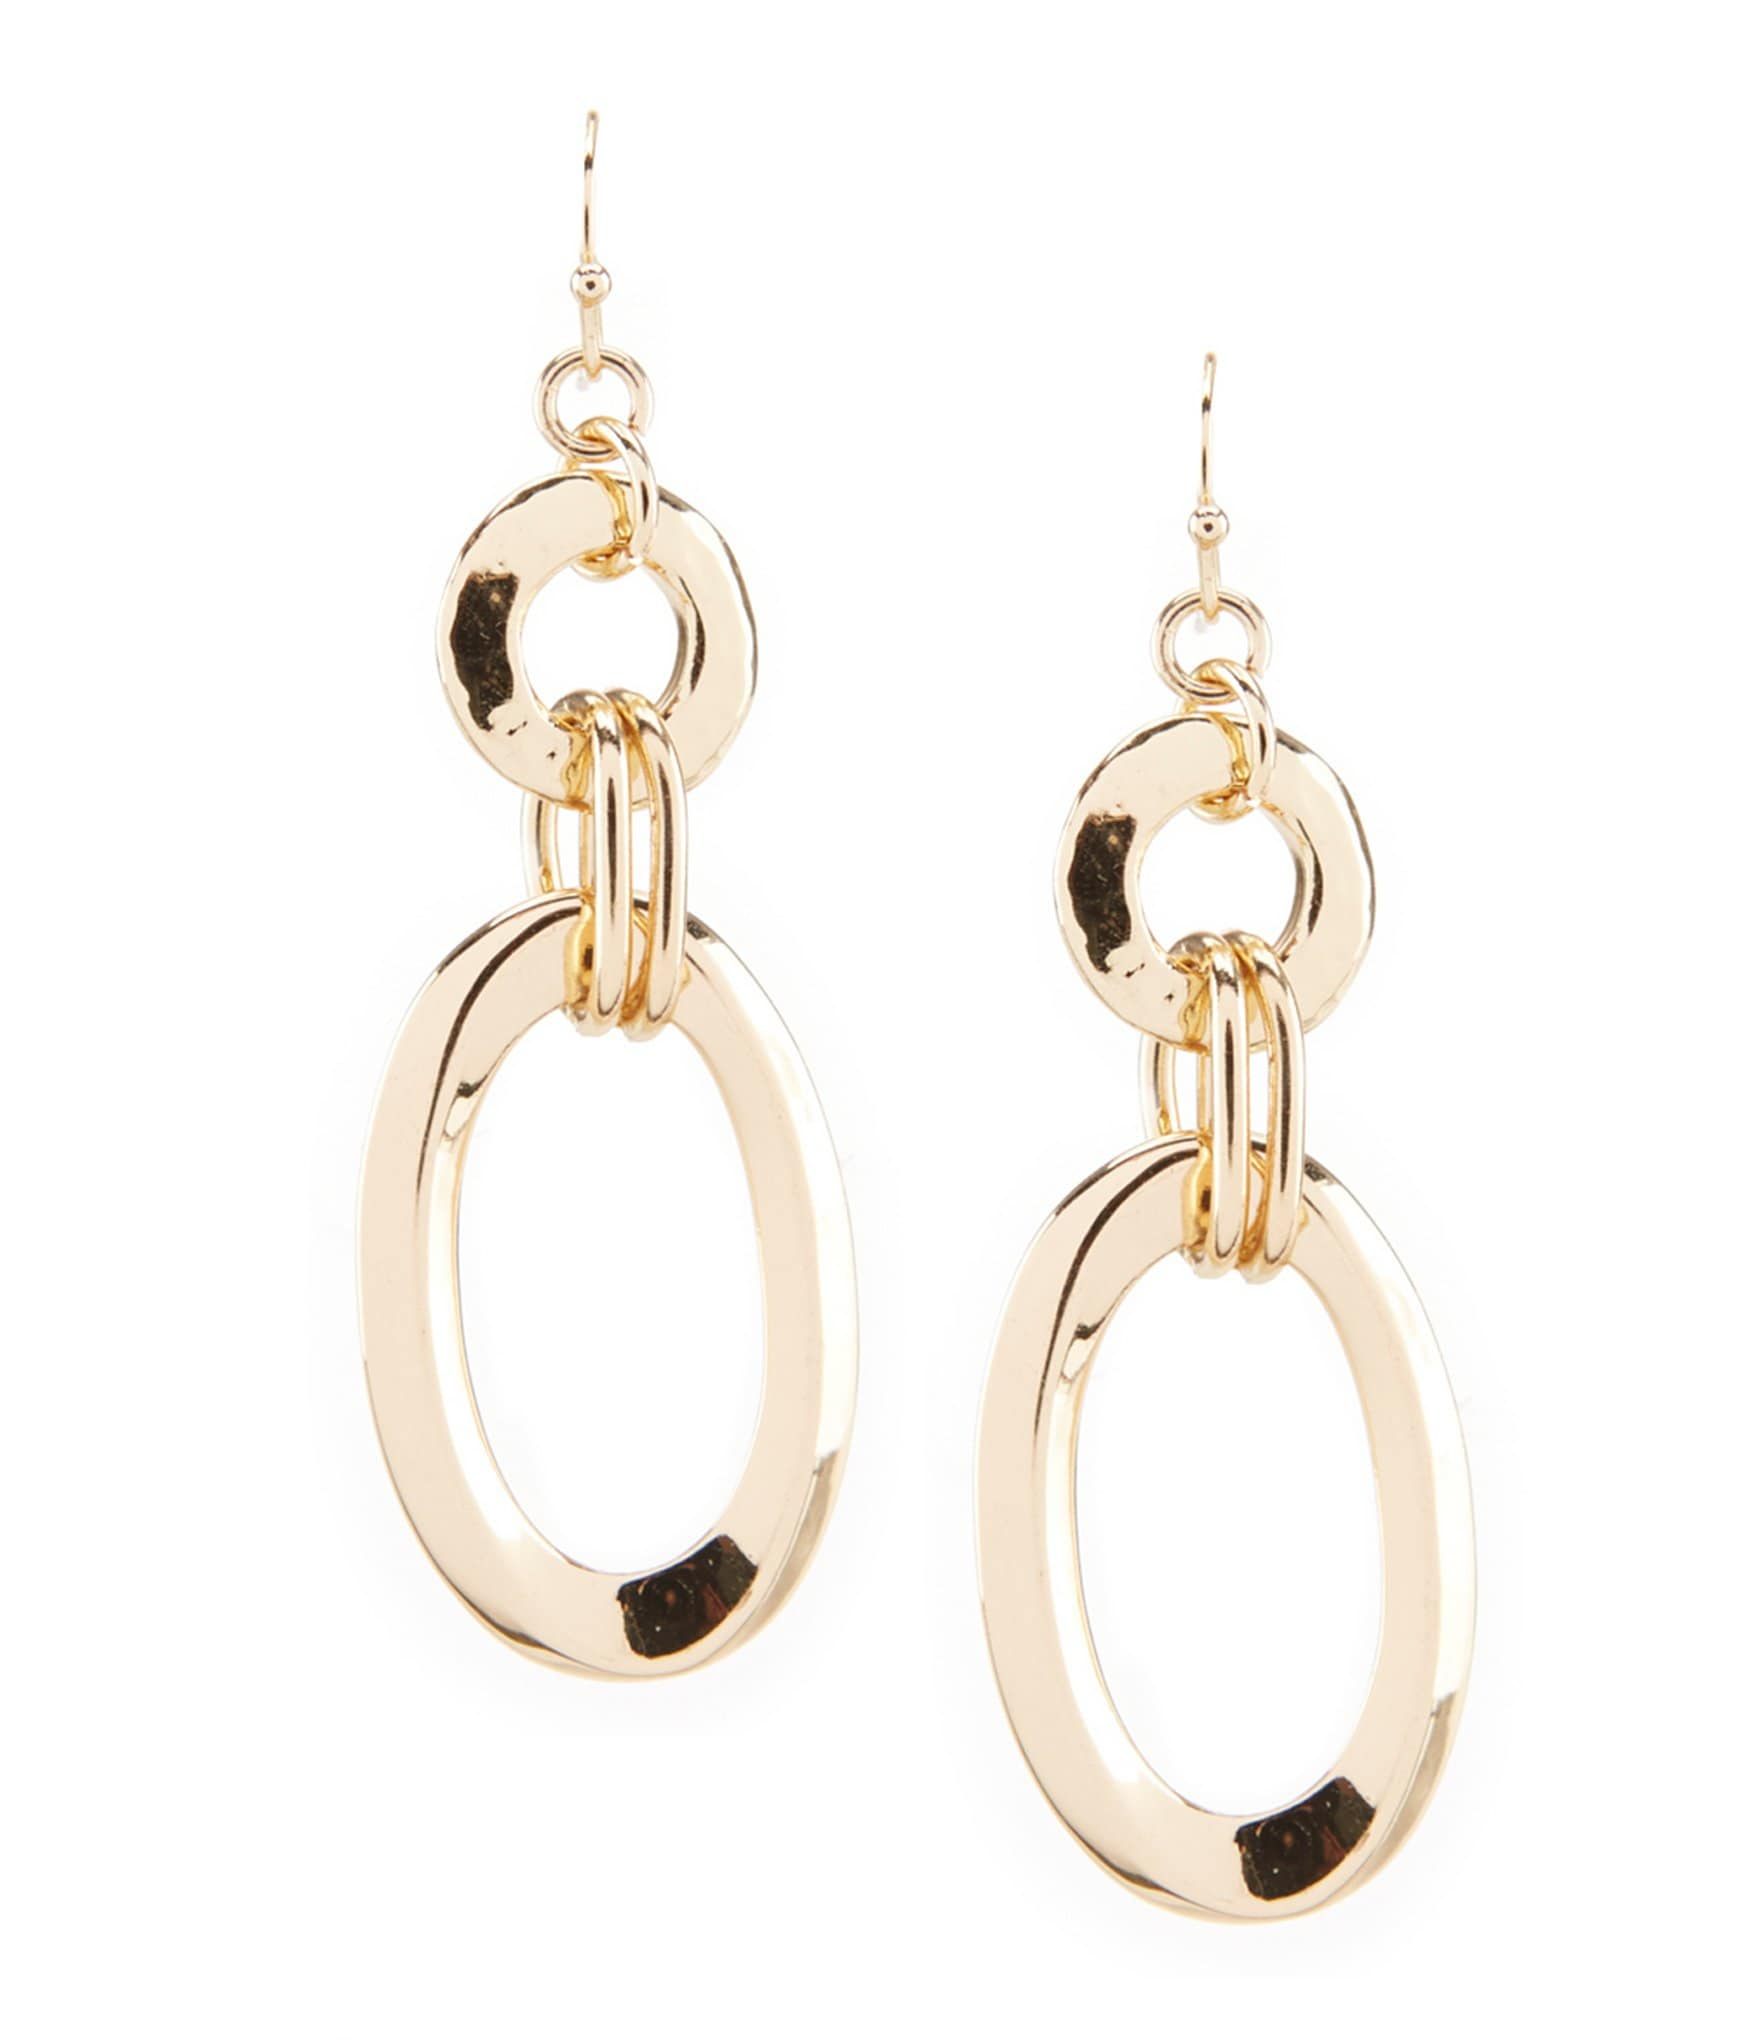 dillard 180 s tailored oval link drop earrings dillards